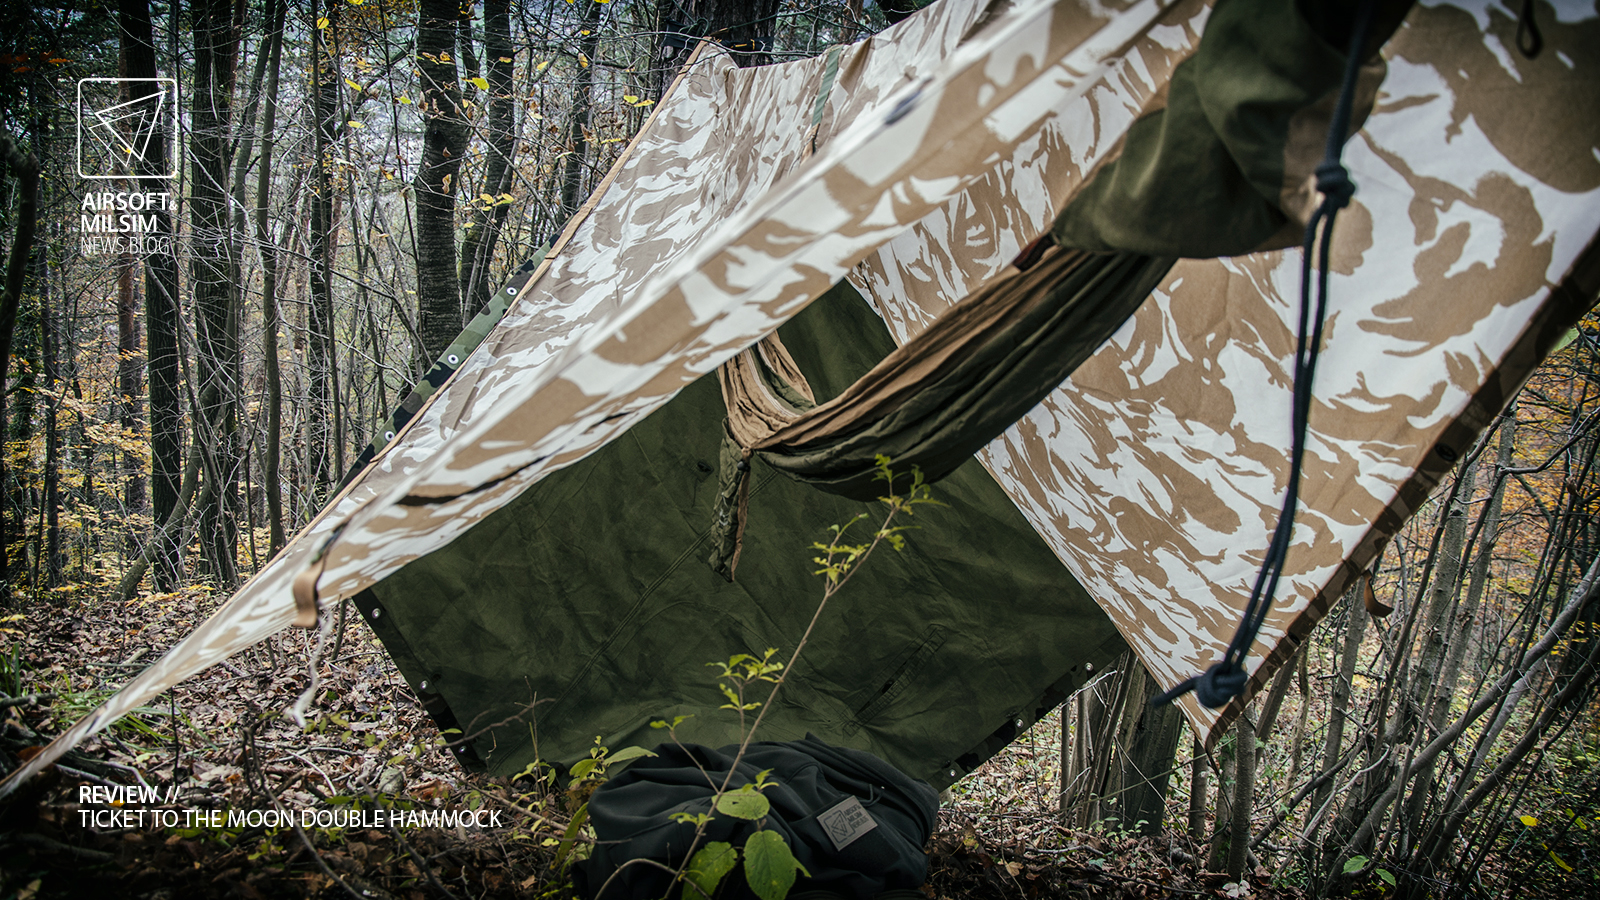 review-tttm-double-hammock-109 & REVIEW - TICKET TO THE MOON Double Hammock - Airsoft u0026 MilSim News ...